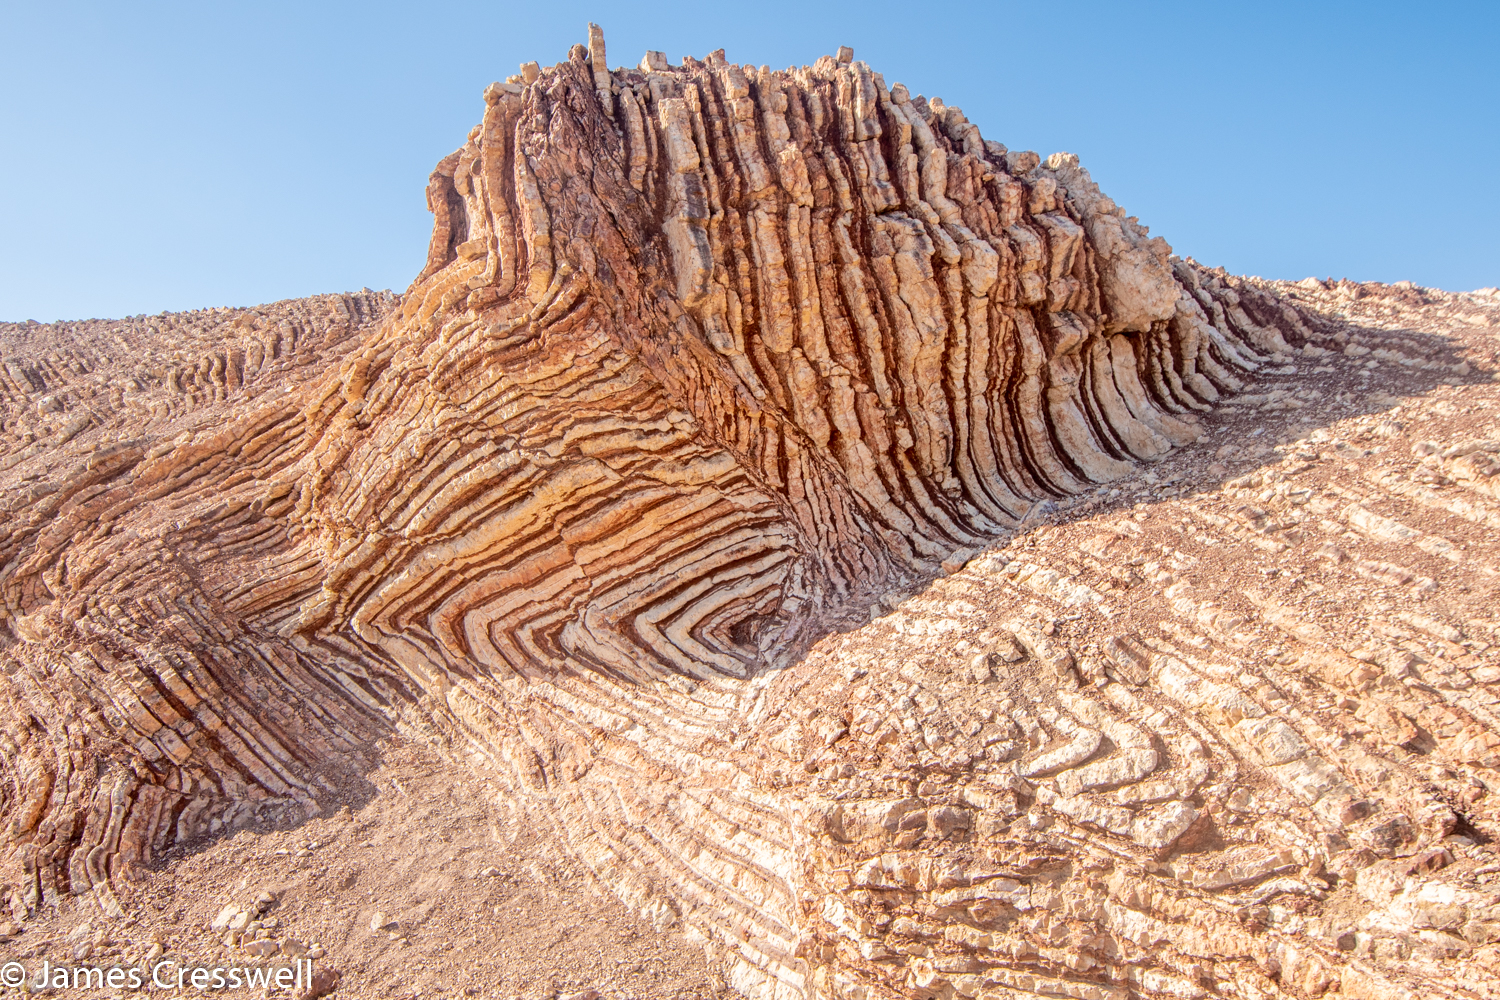 A photograph of the Mother of all Outcrops taken on a GeoWorld Travel Oman geology trip, tour and holiday